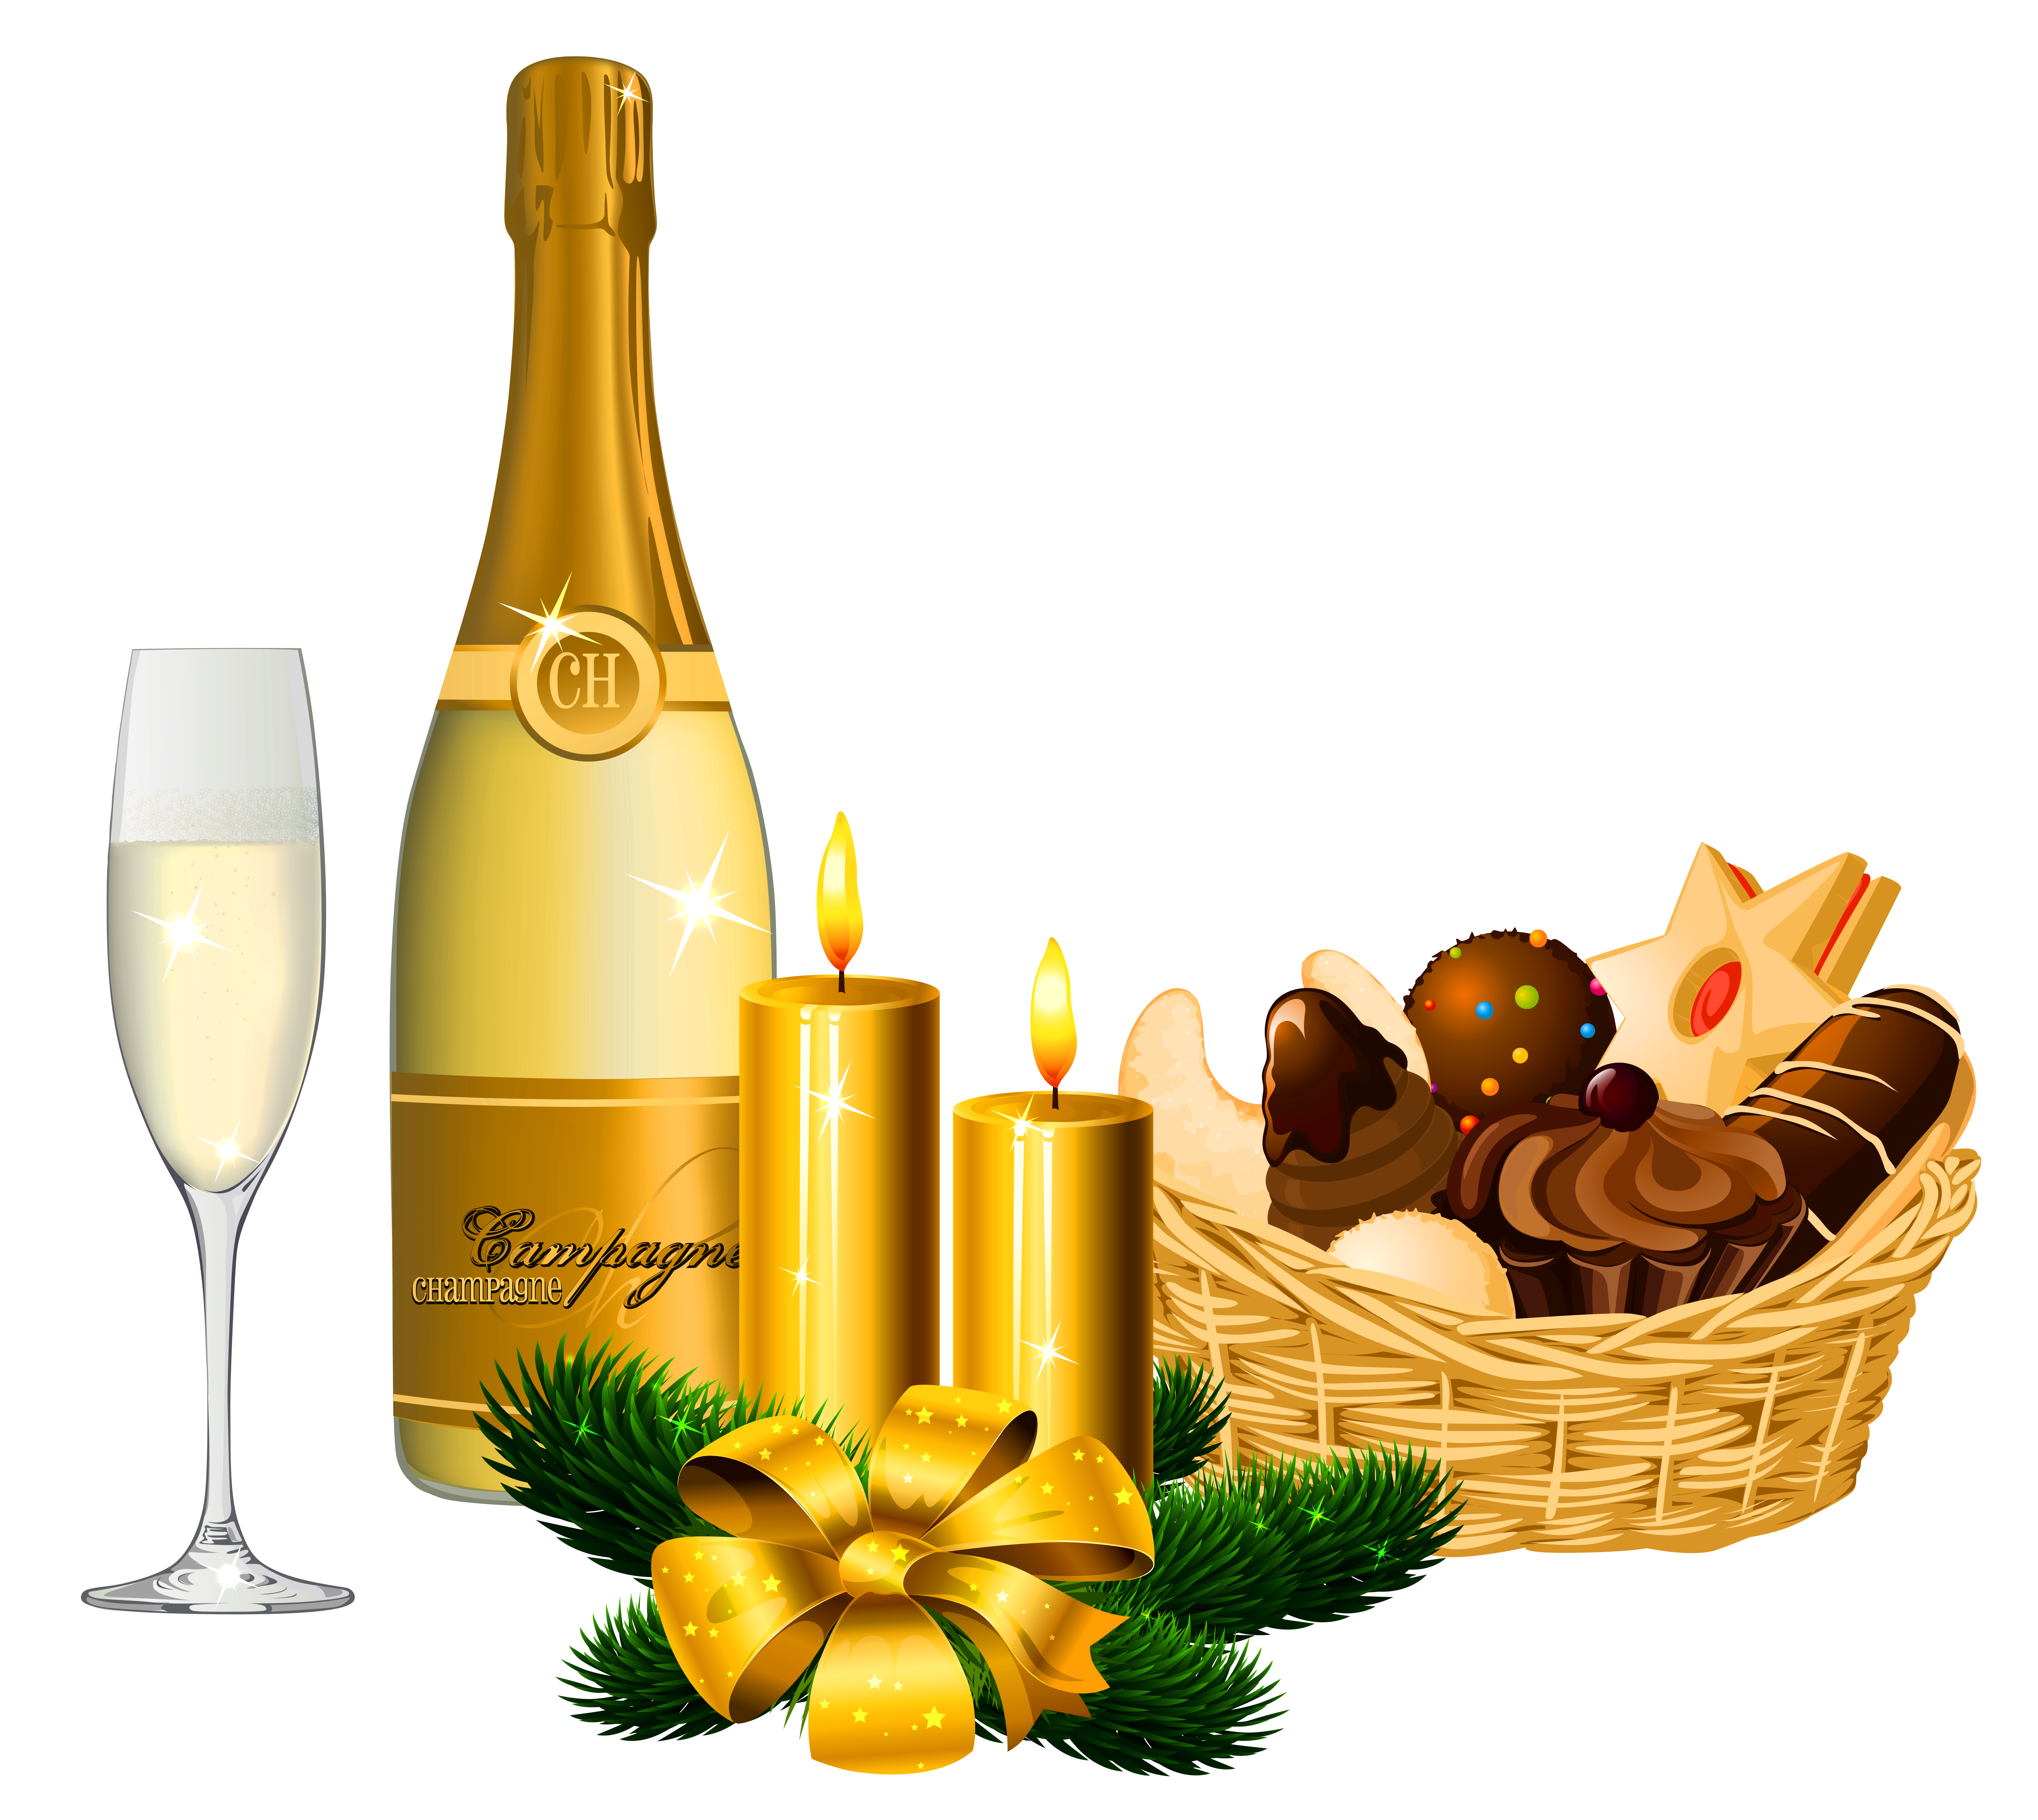 banner black and white Year delicacies and png. Champagne clipart new years eve.